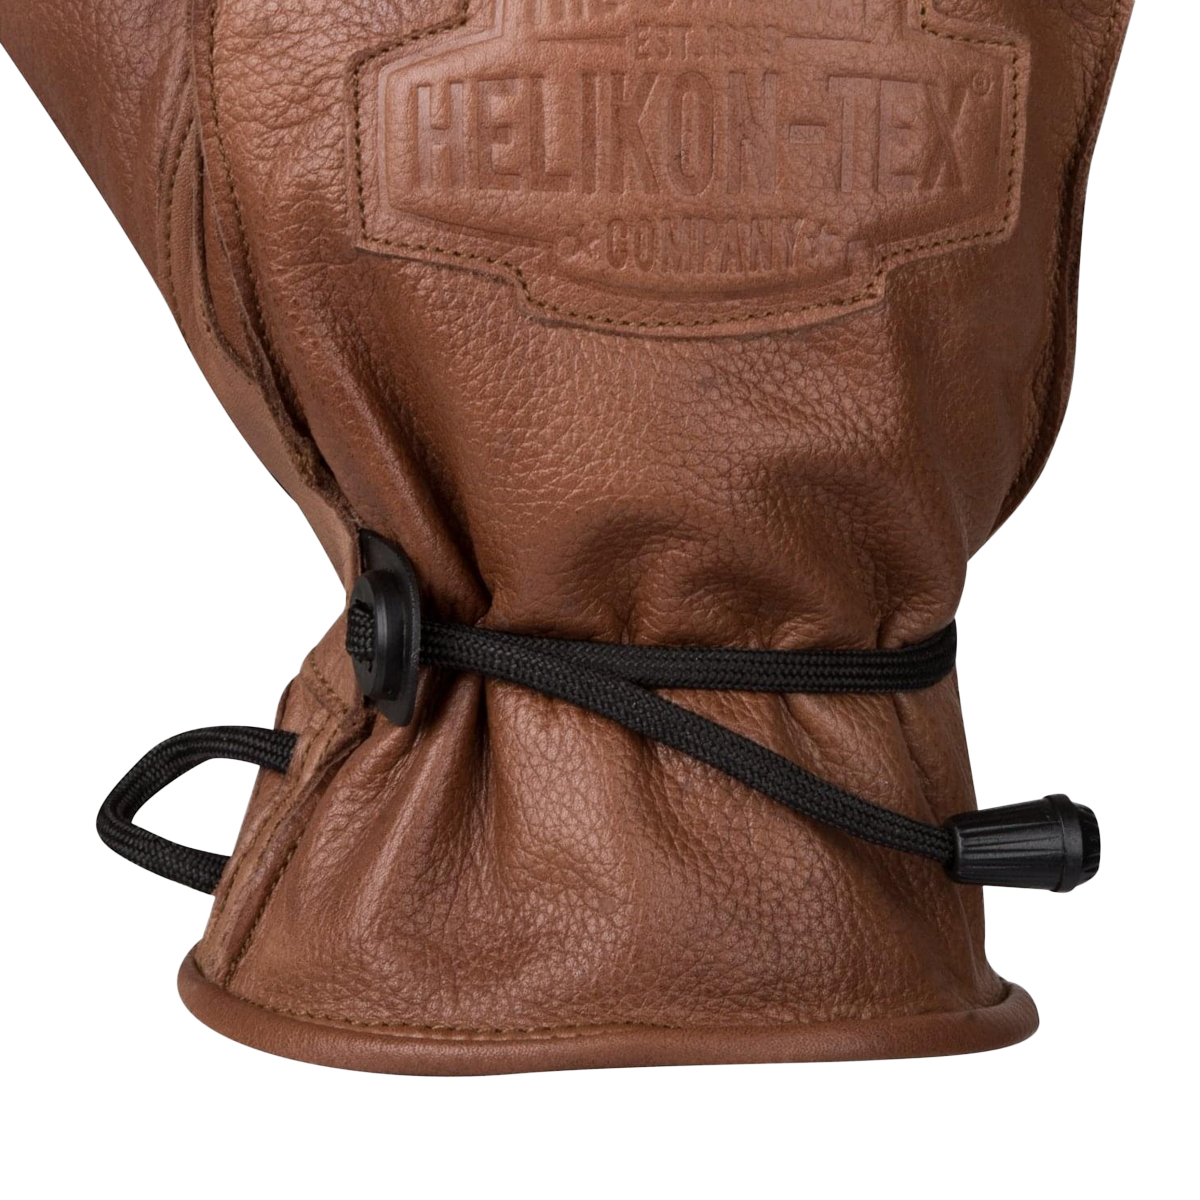 S Brown Helikon Tex Woodcrafter Gloves Outdoor Leather Finger Gloves U S